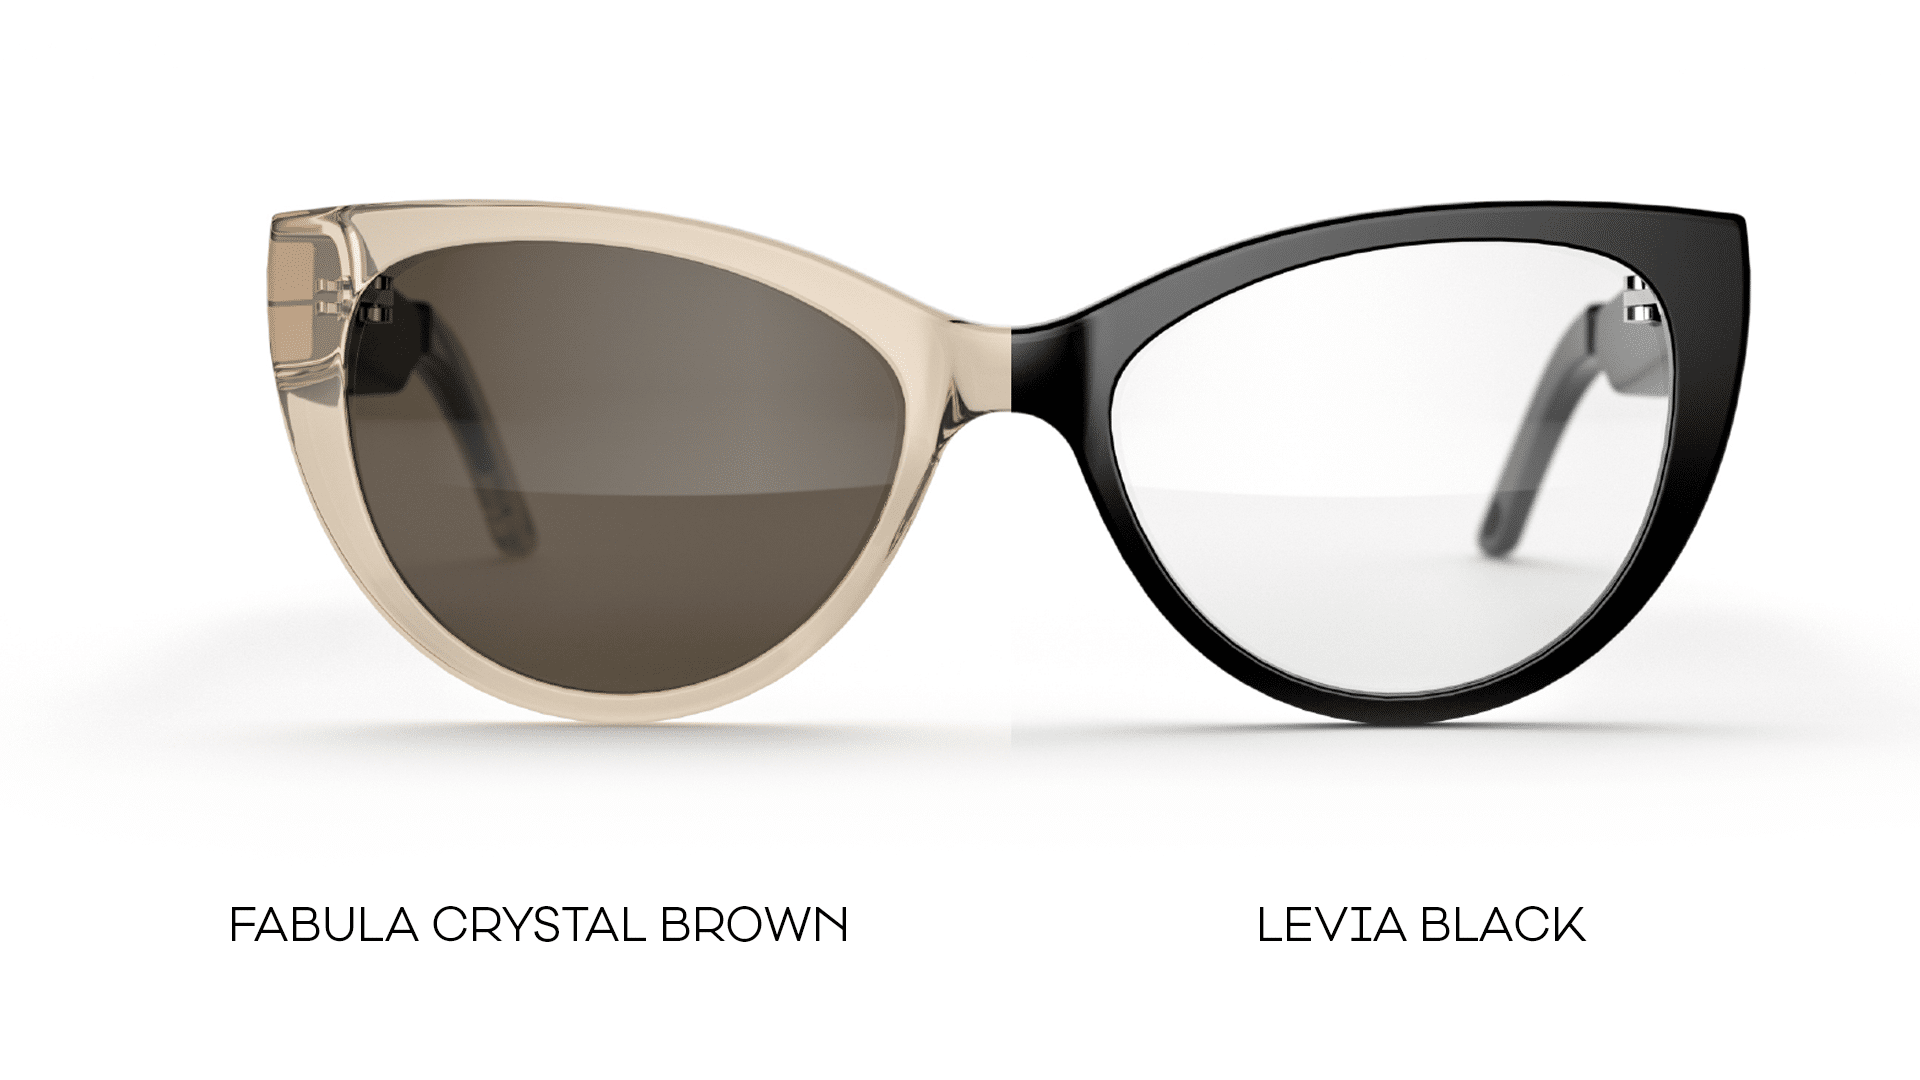 Fauna audio eyewear in two different styles - powered by USound's MEMS technology.